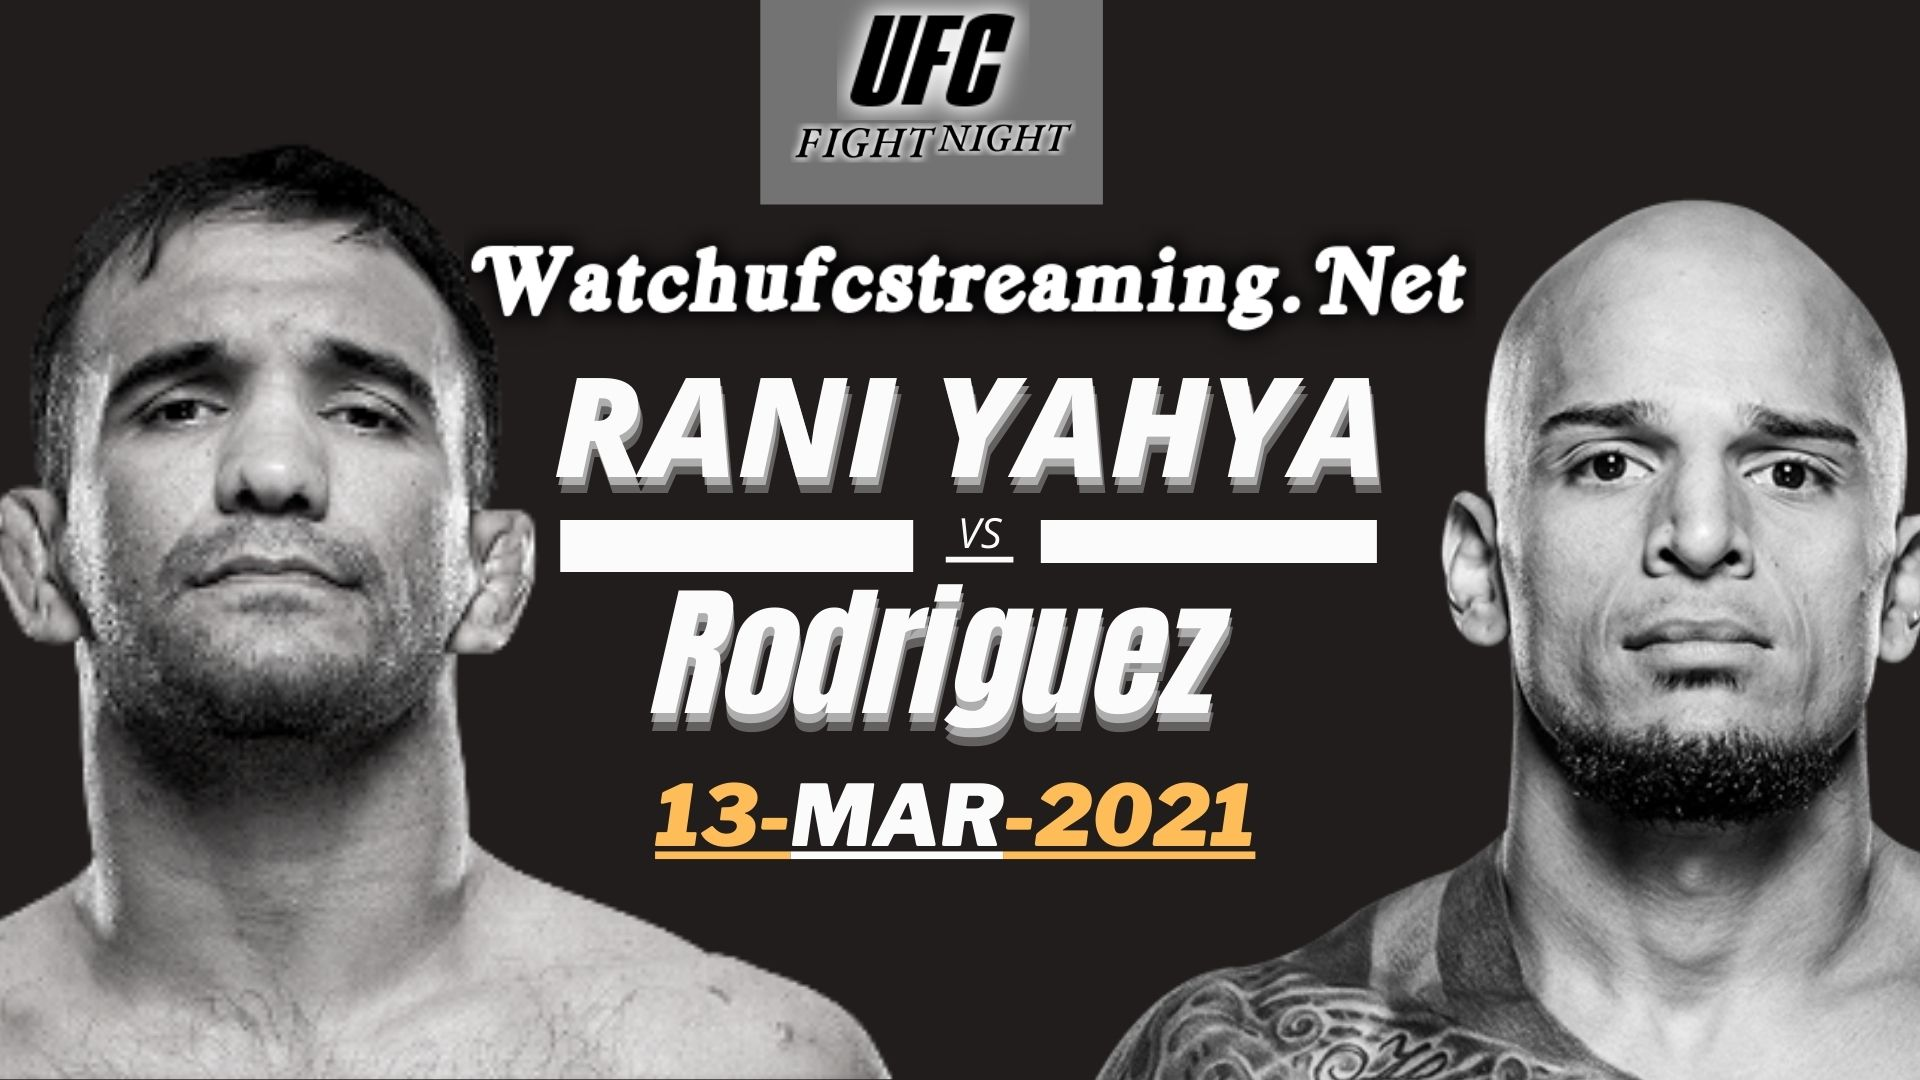 UFC | Yahya Vs Rodriguez Highlights 2021 - Bantamweight